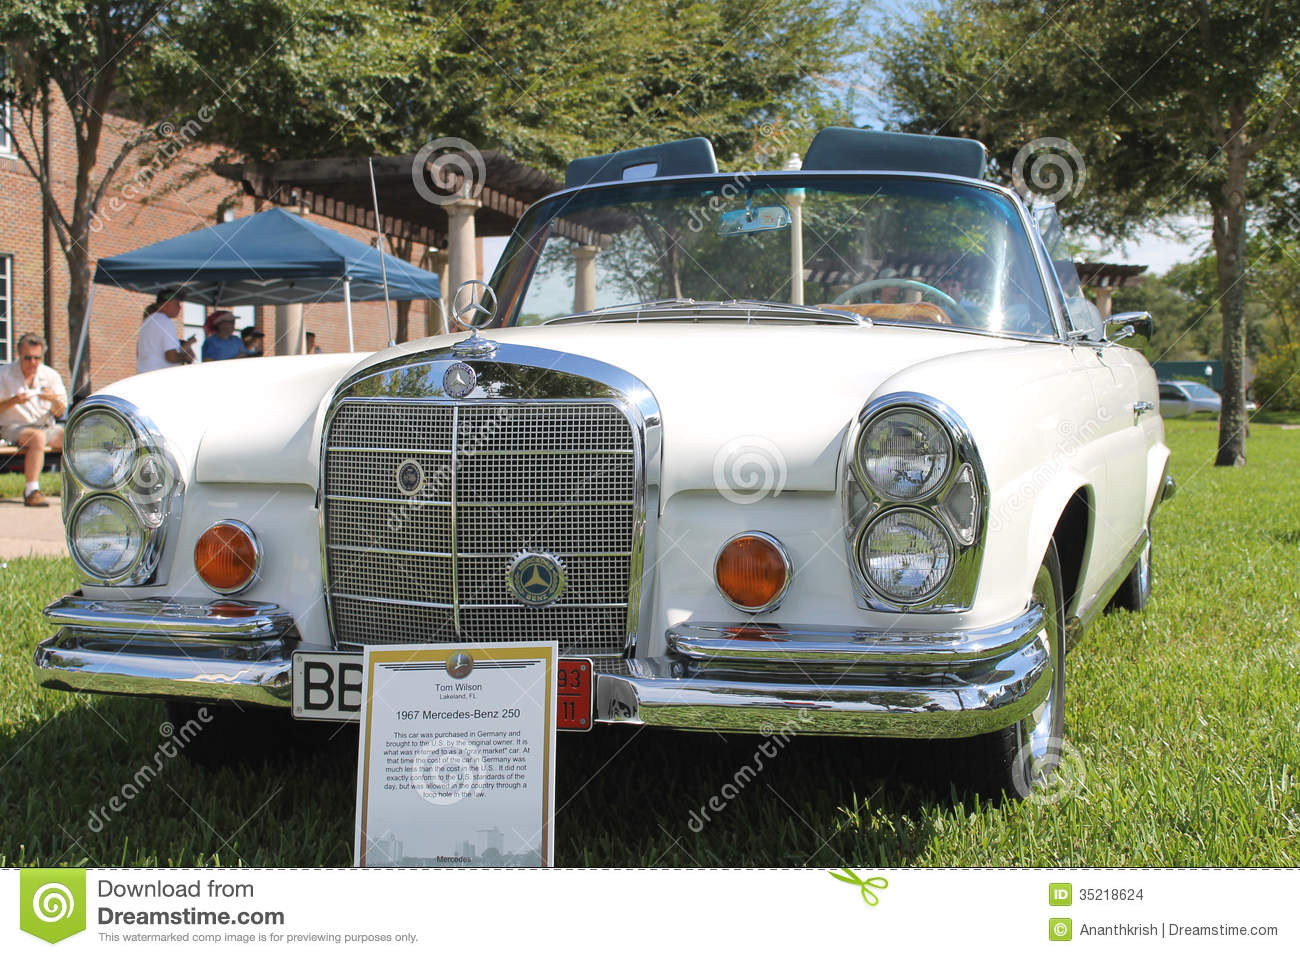 Old mercedes benz 250 car at the car show editorial stock - Mercedes car show ...